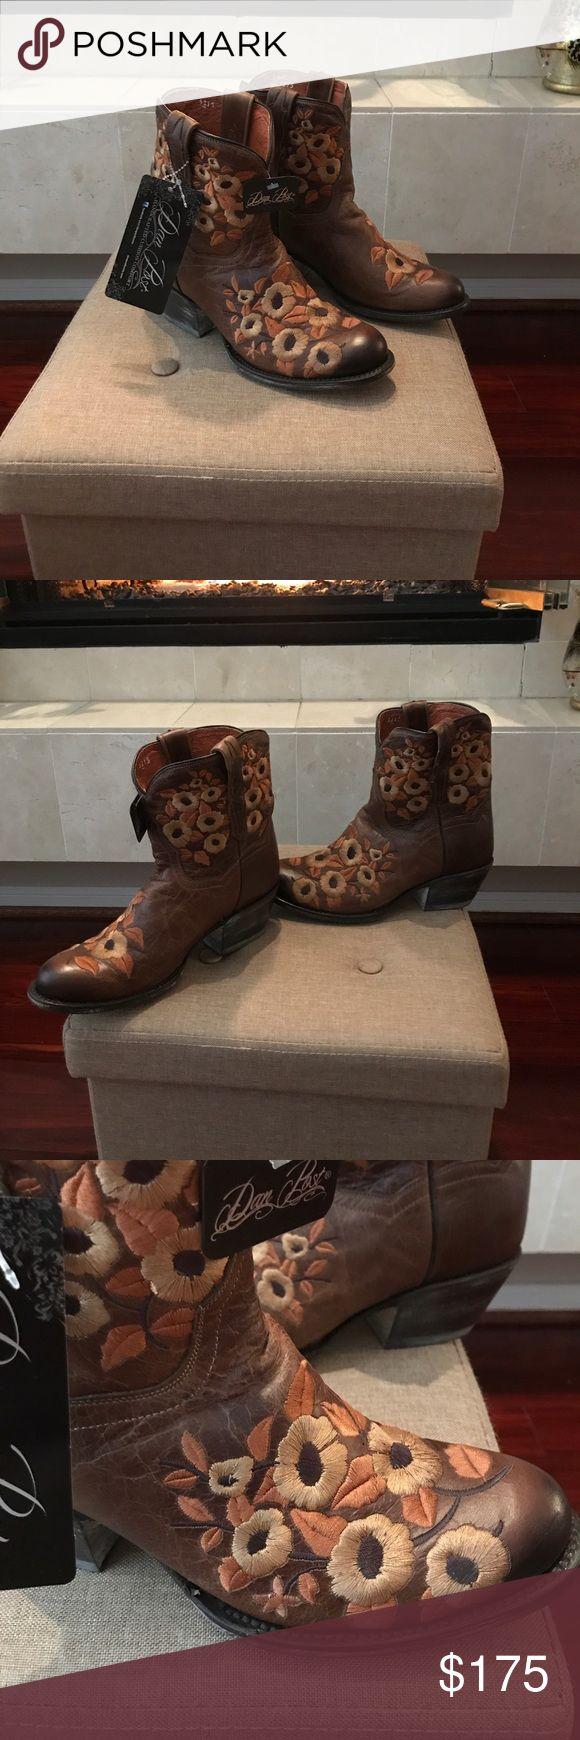 NWT Dan Post boots Dan Post ankle boots ! New with tags... beautiful embroidered flowers Dan Post Shoes Heeled Boots